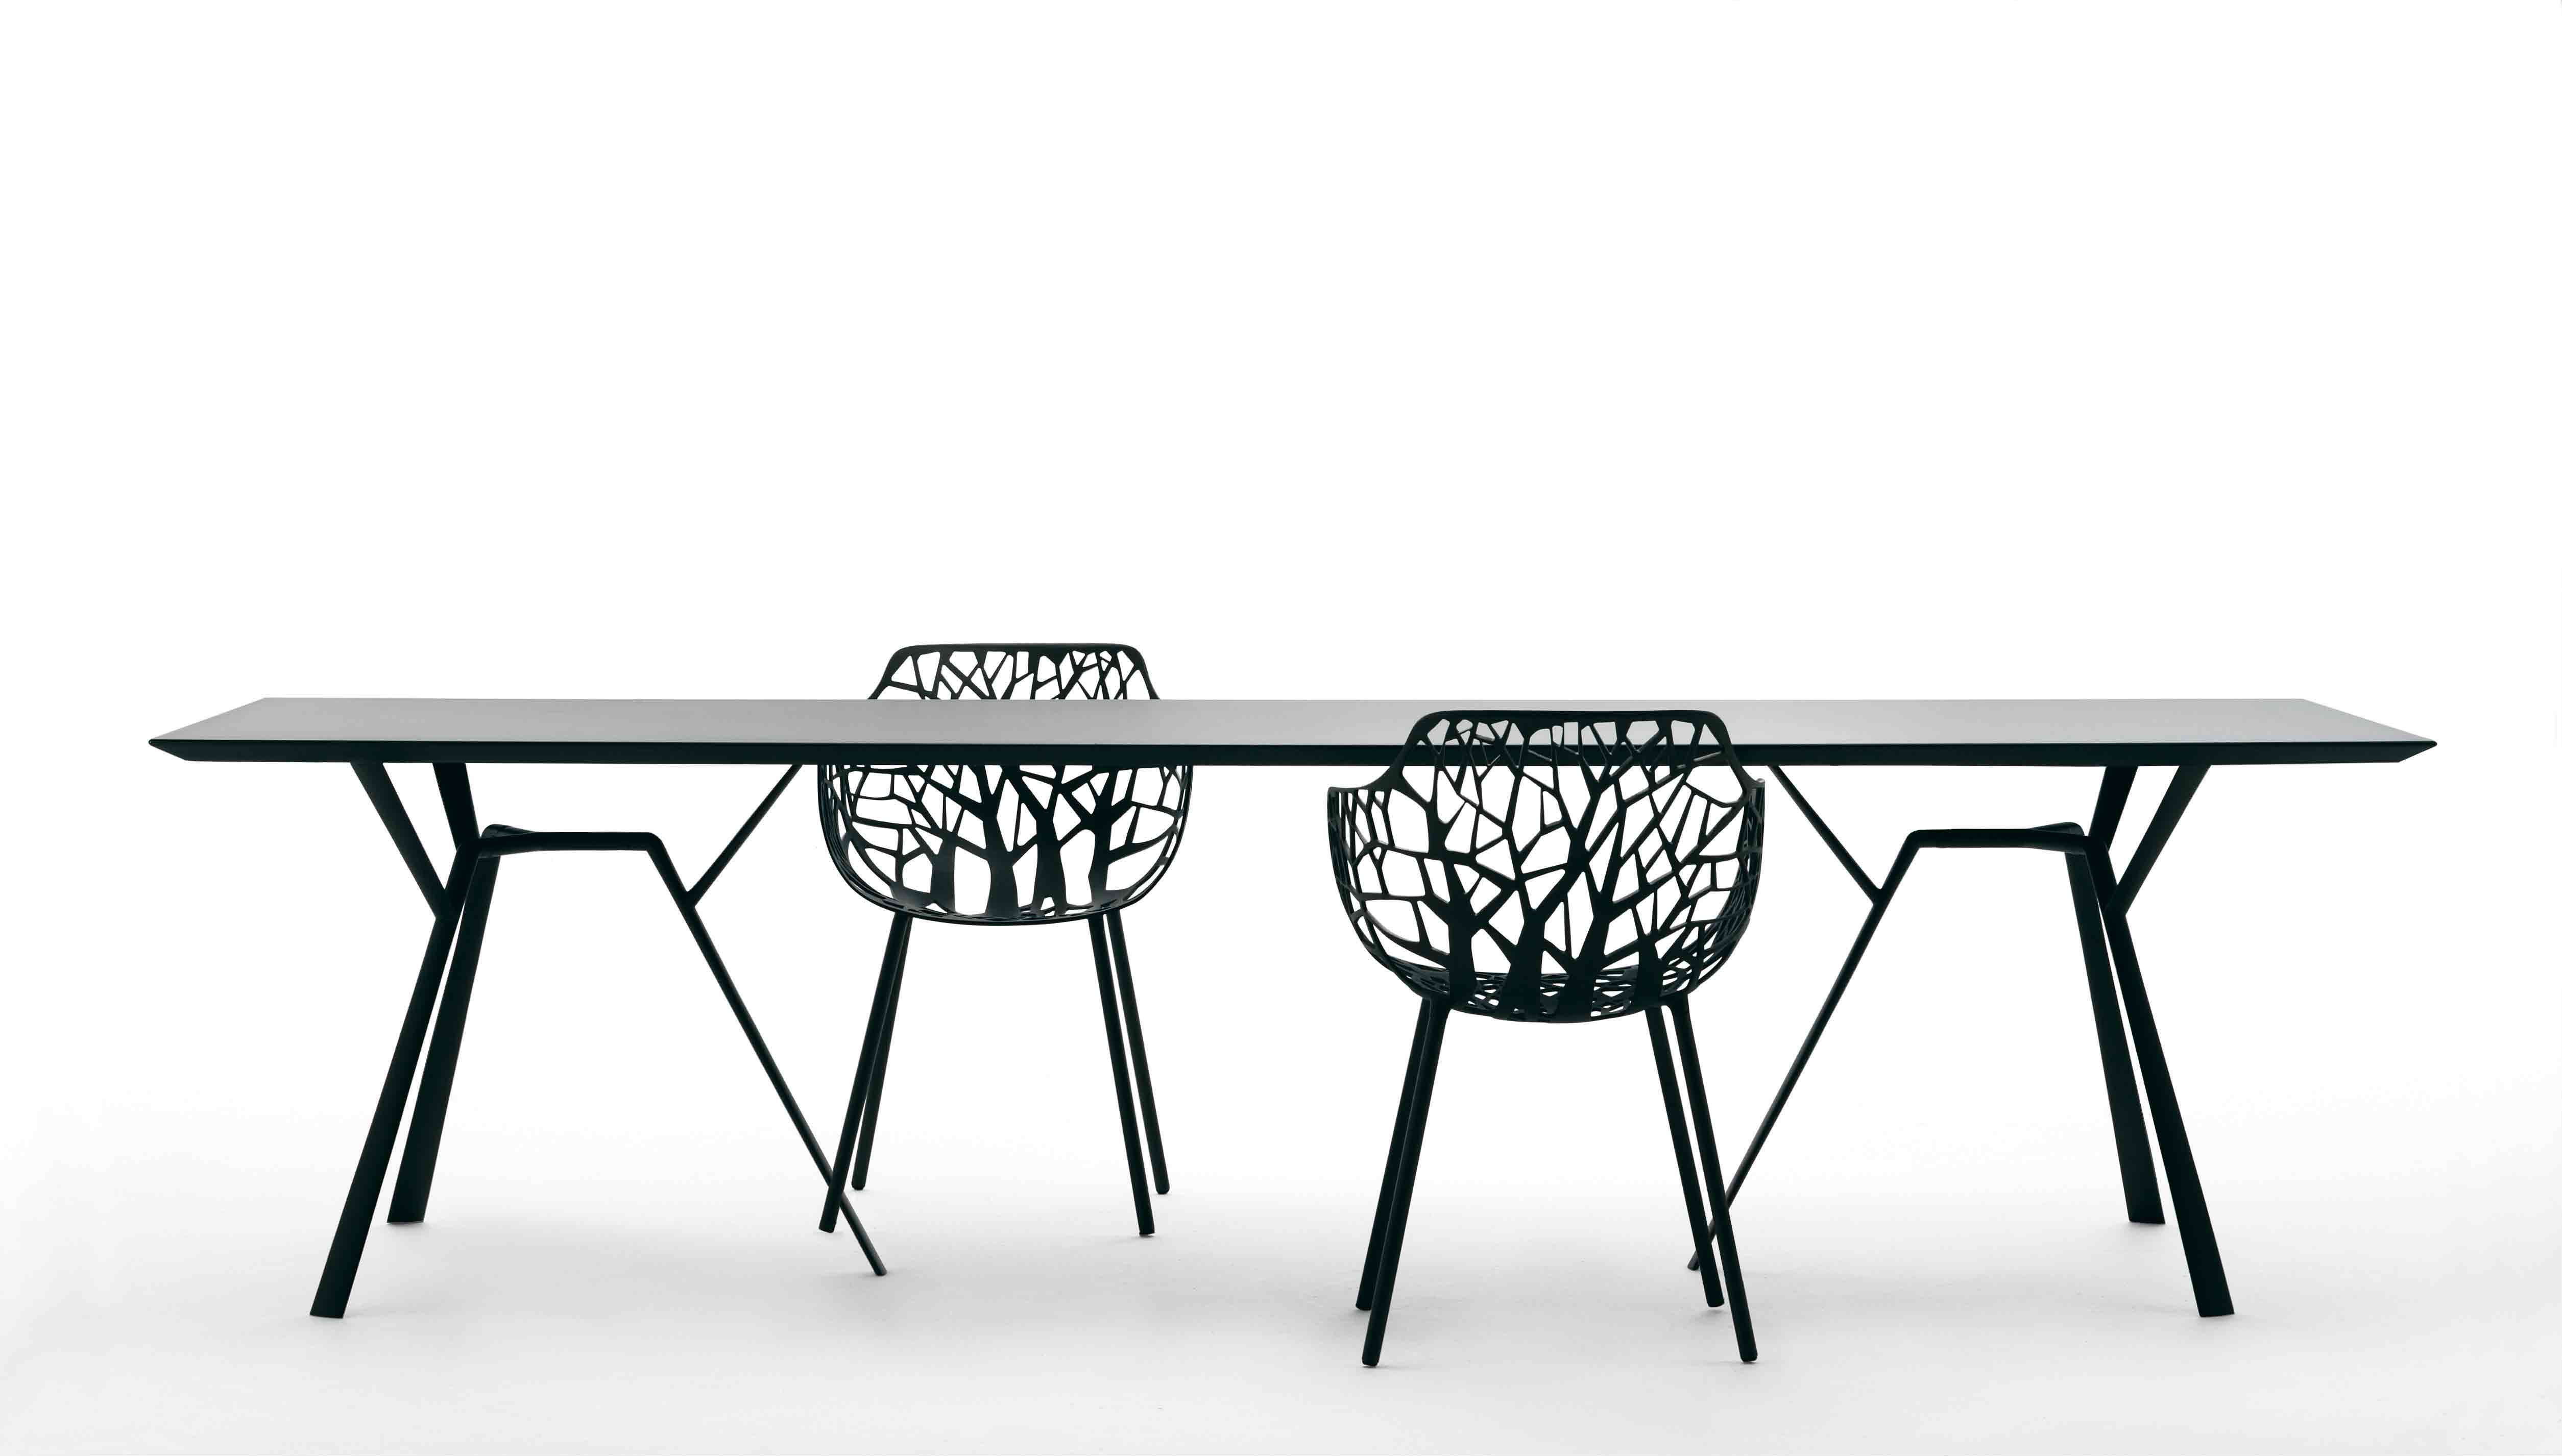 File Chairs table by Robby Cantarutti Wikimedia mons